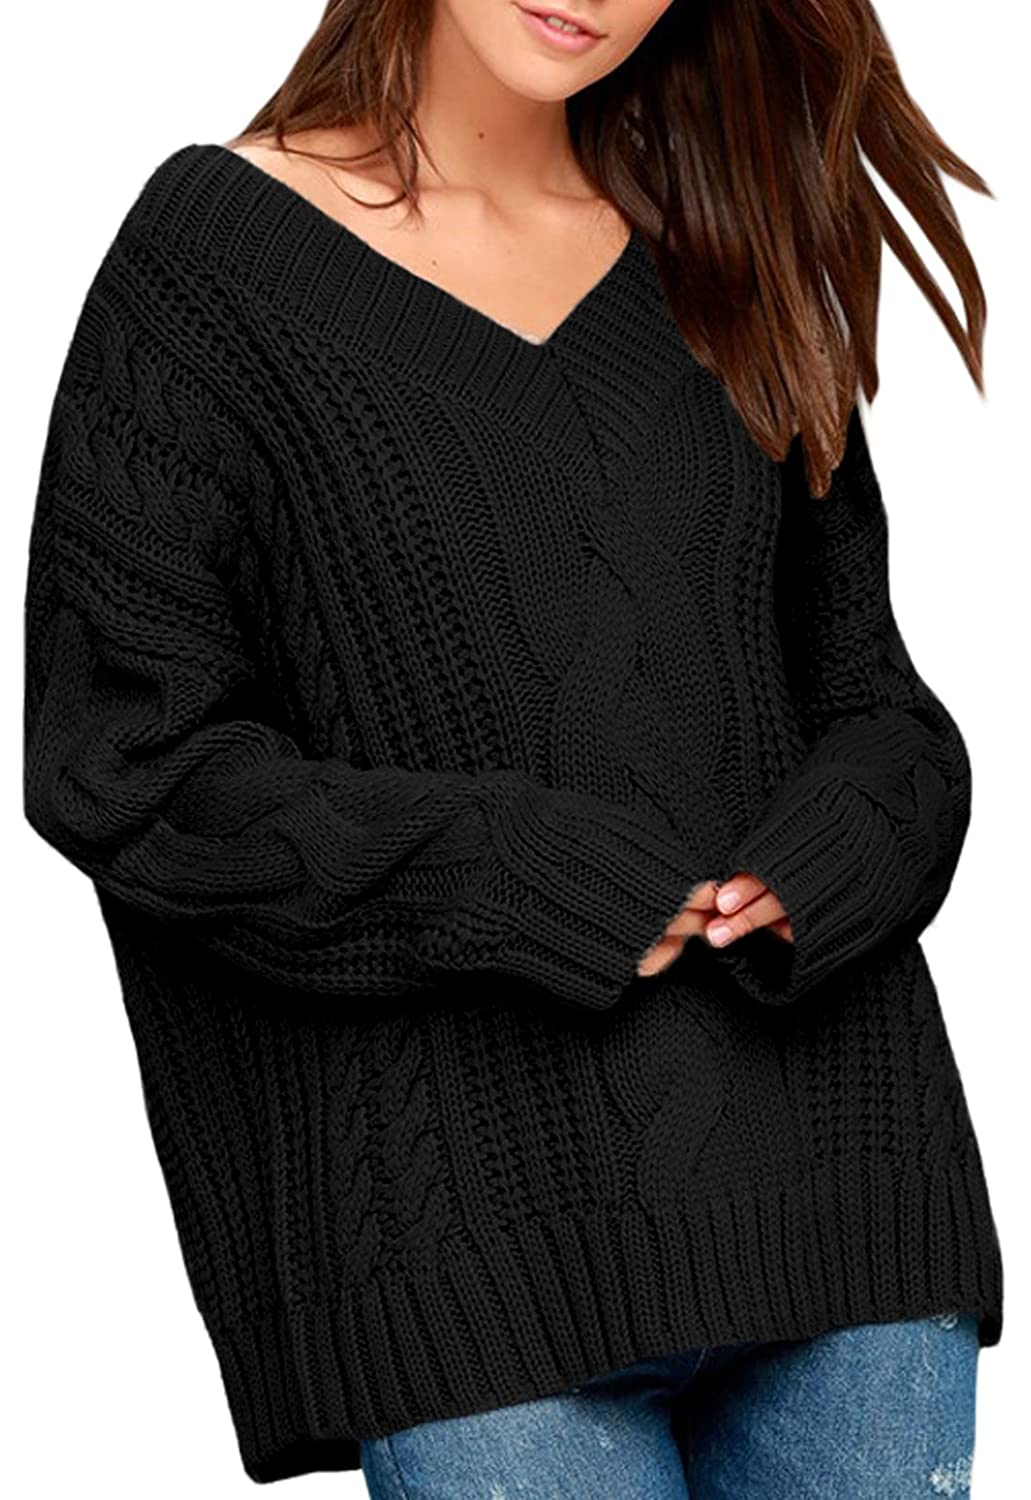 b80054de6 Dearlovers Womens Long Sleeve V Neck Loose Casual Knit Sweater Pullovers  Tops at Amazon Women s Clothing store